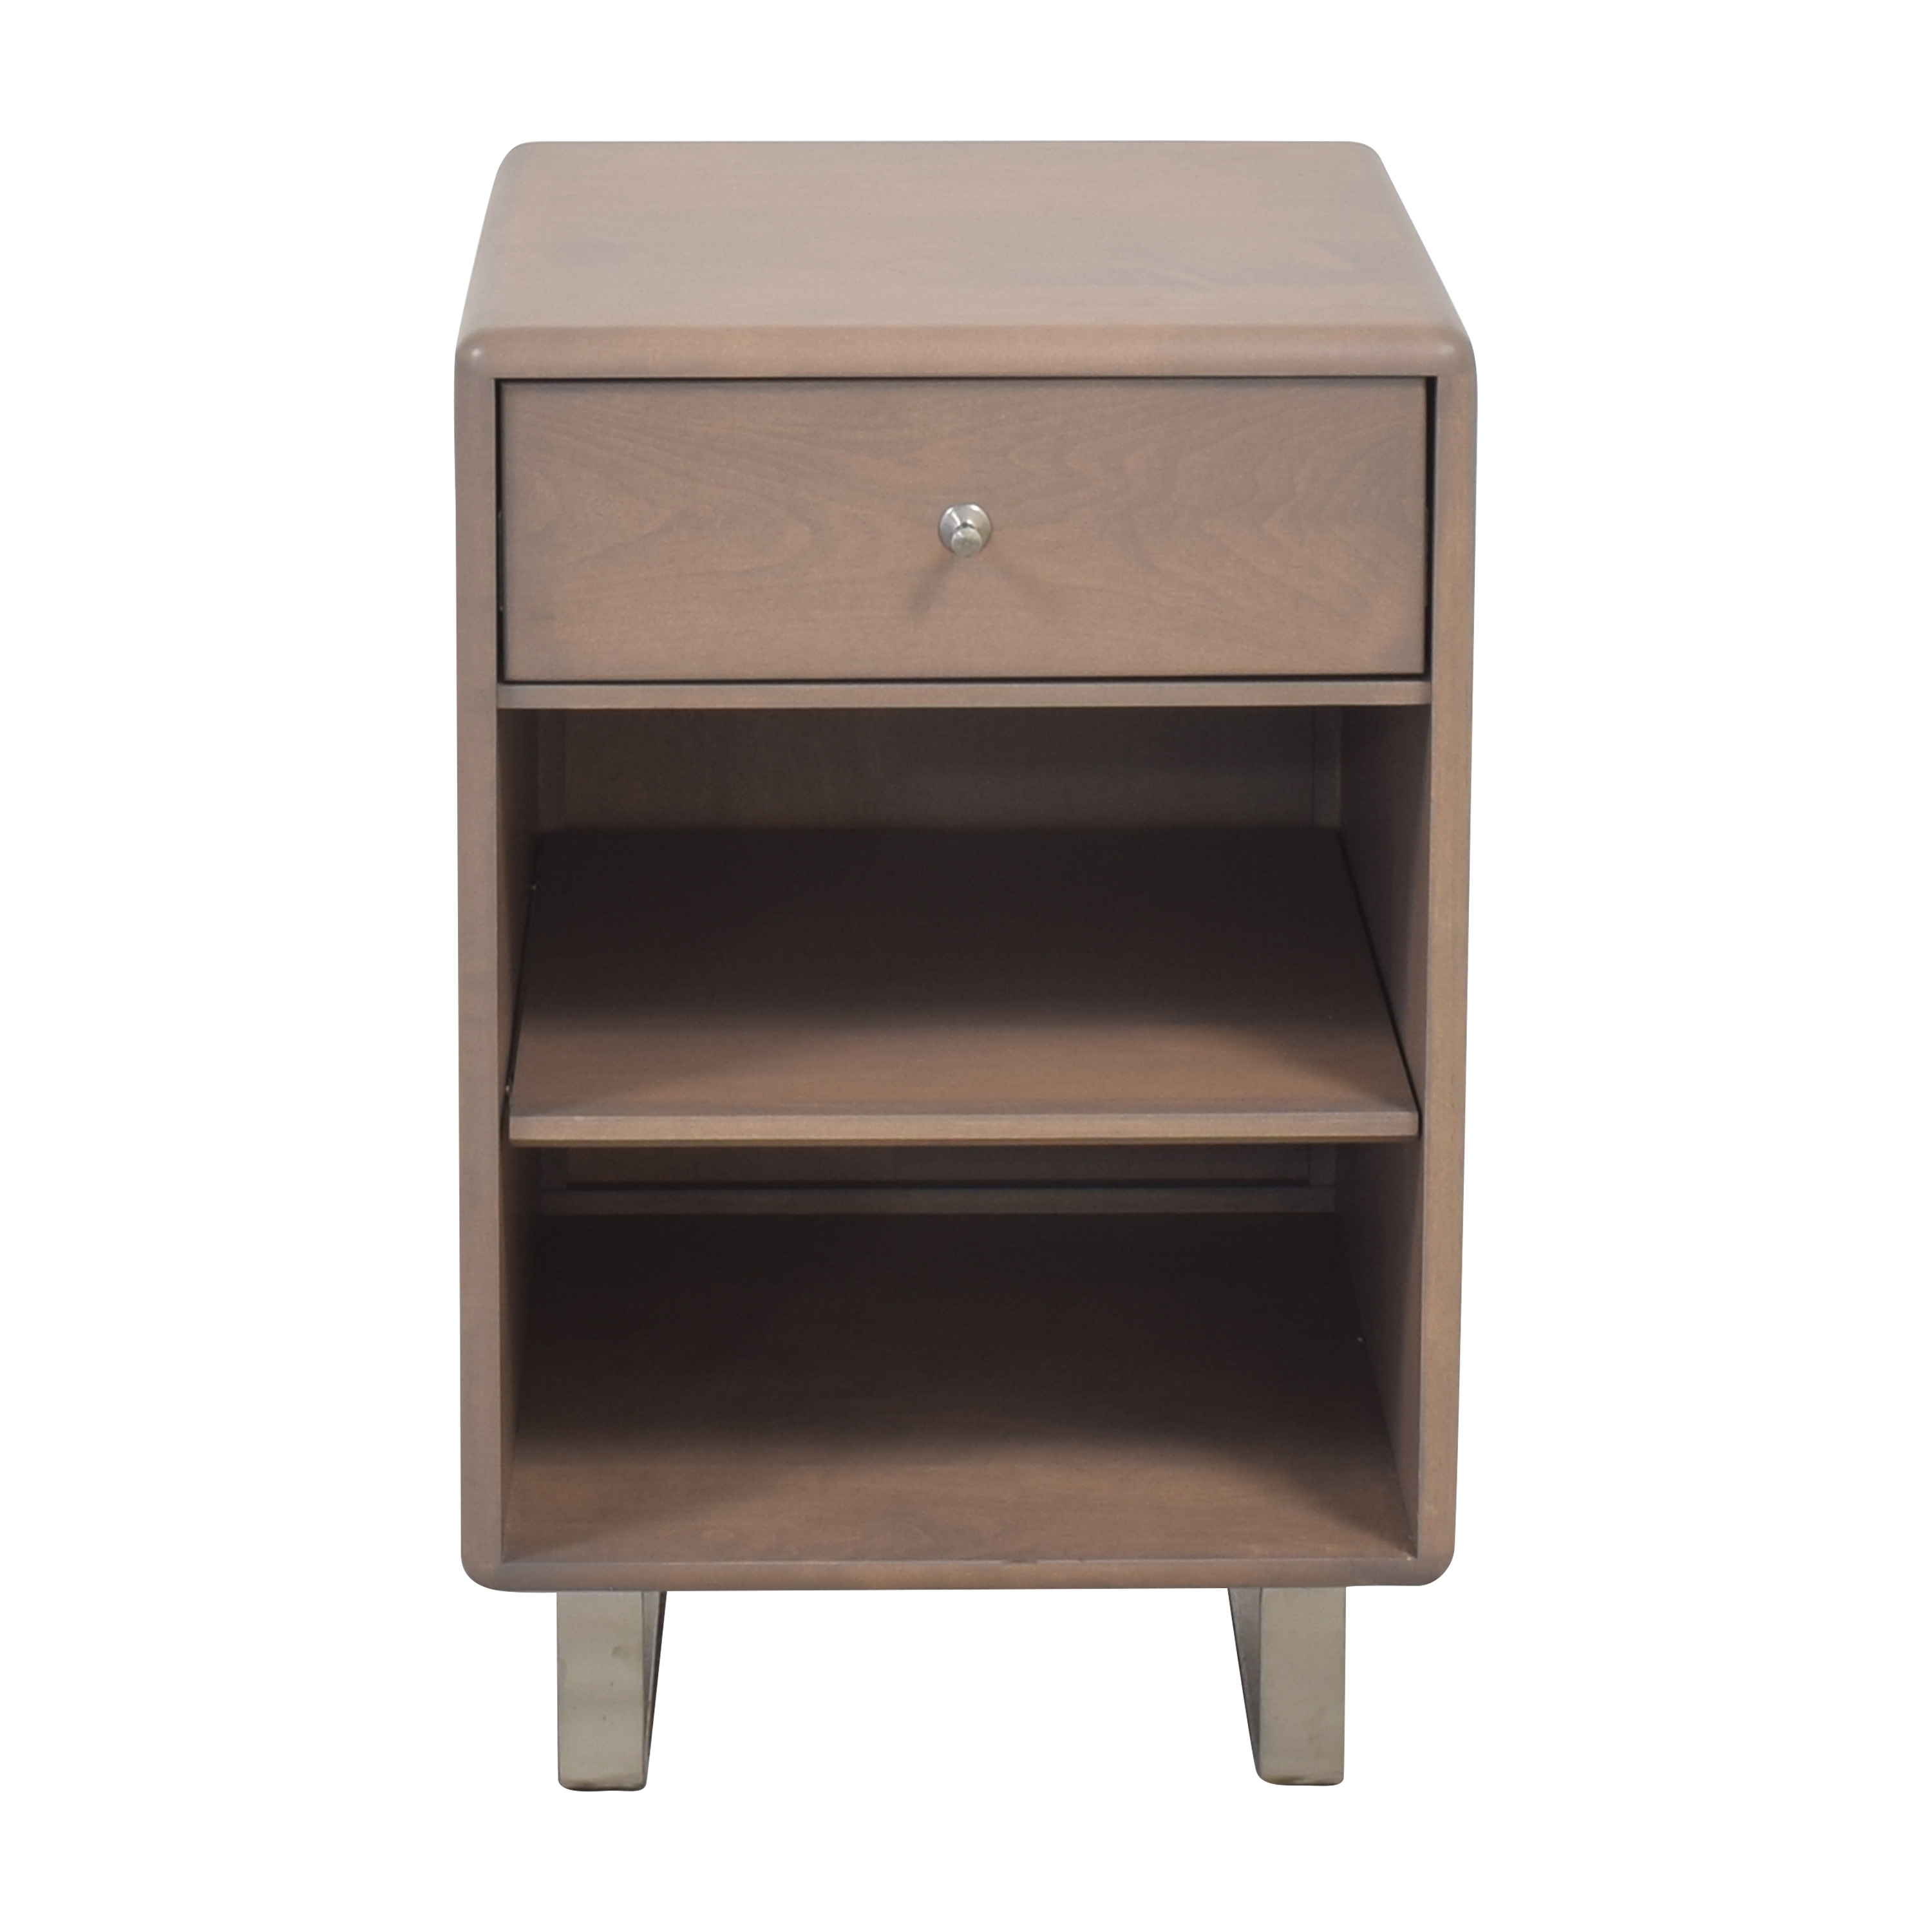 Room & Board Room & Board Whitney One Drawer Nightstand brown